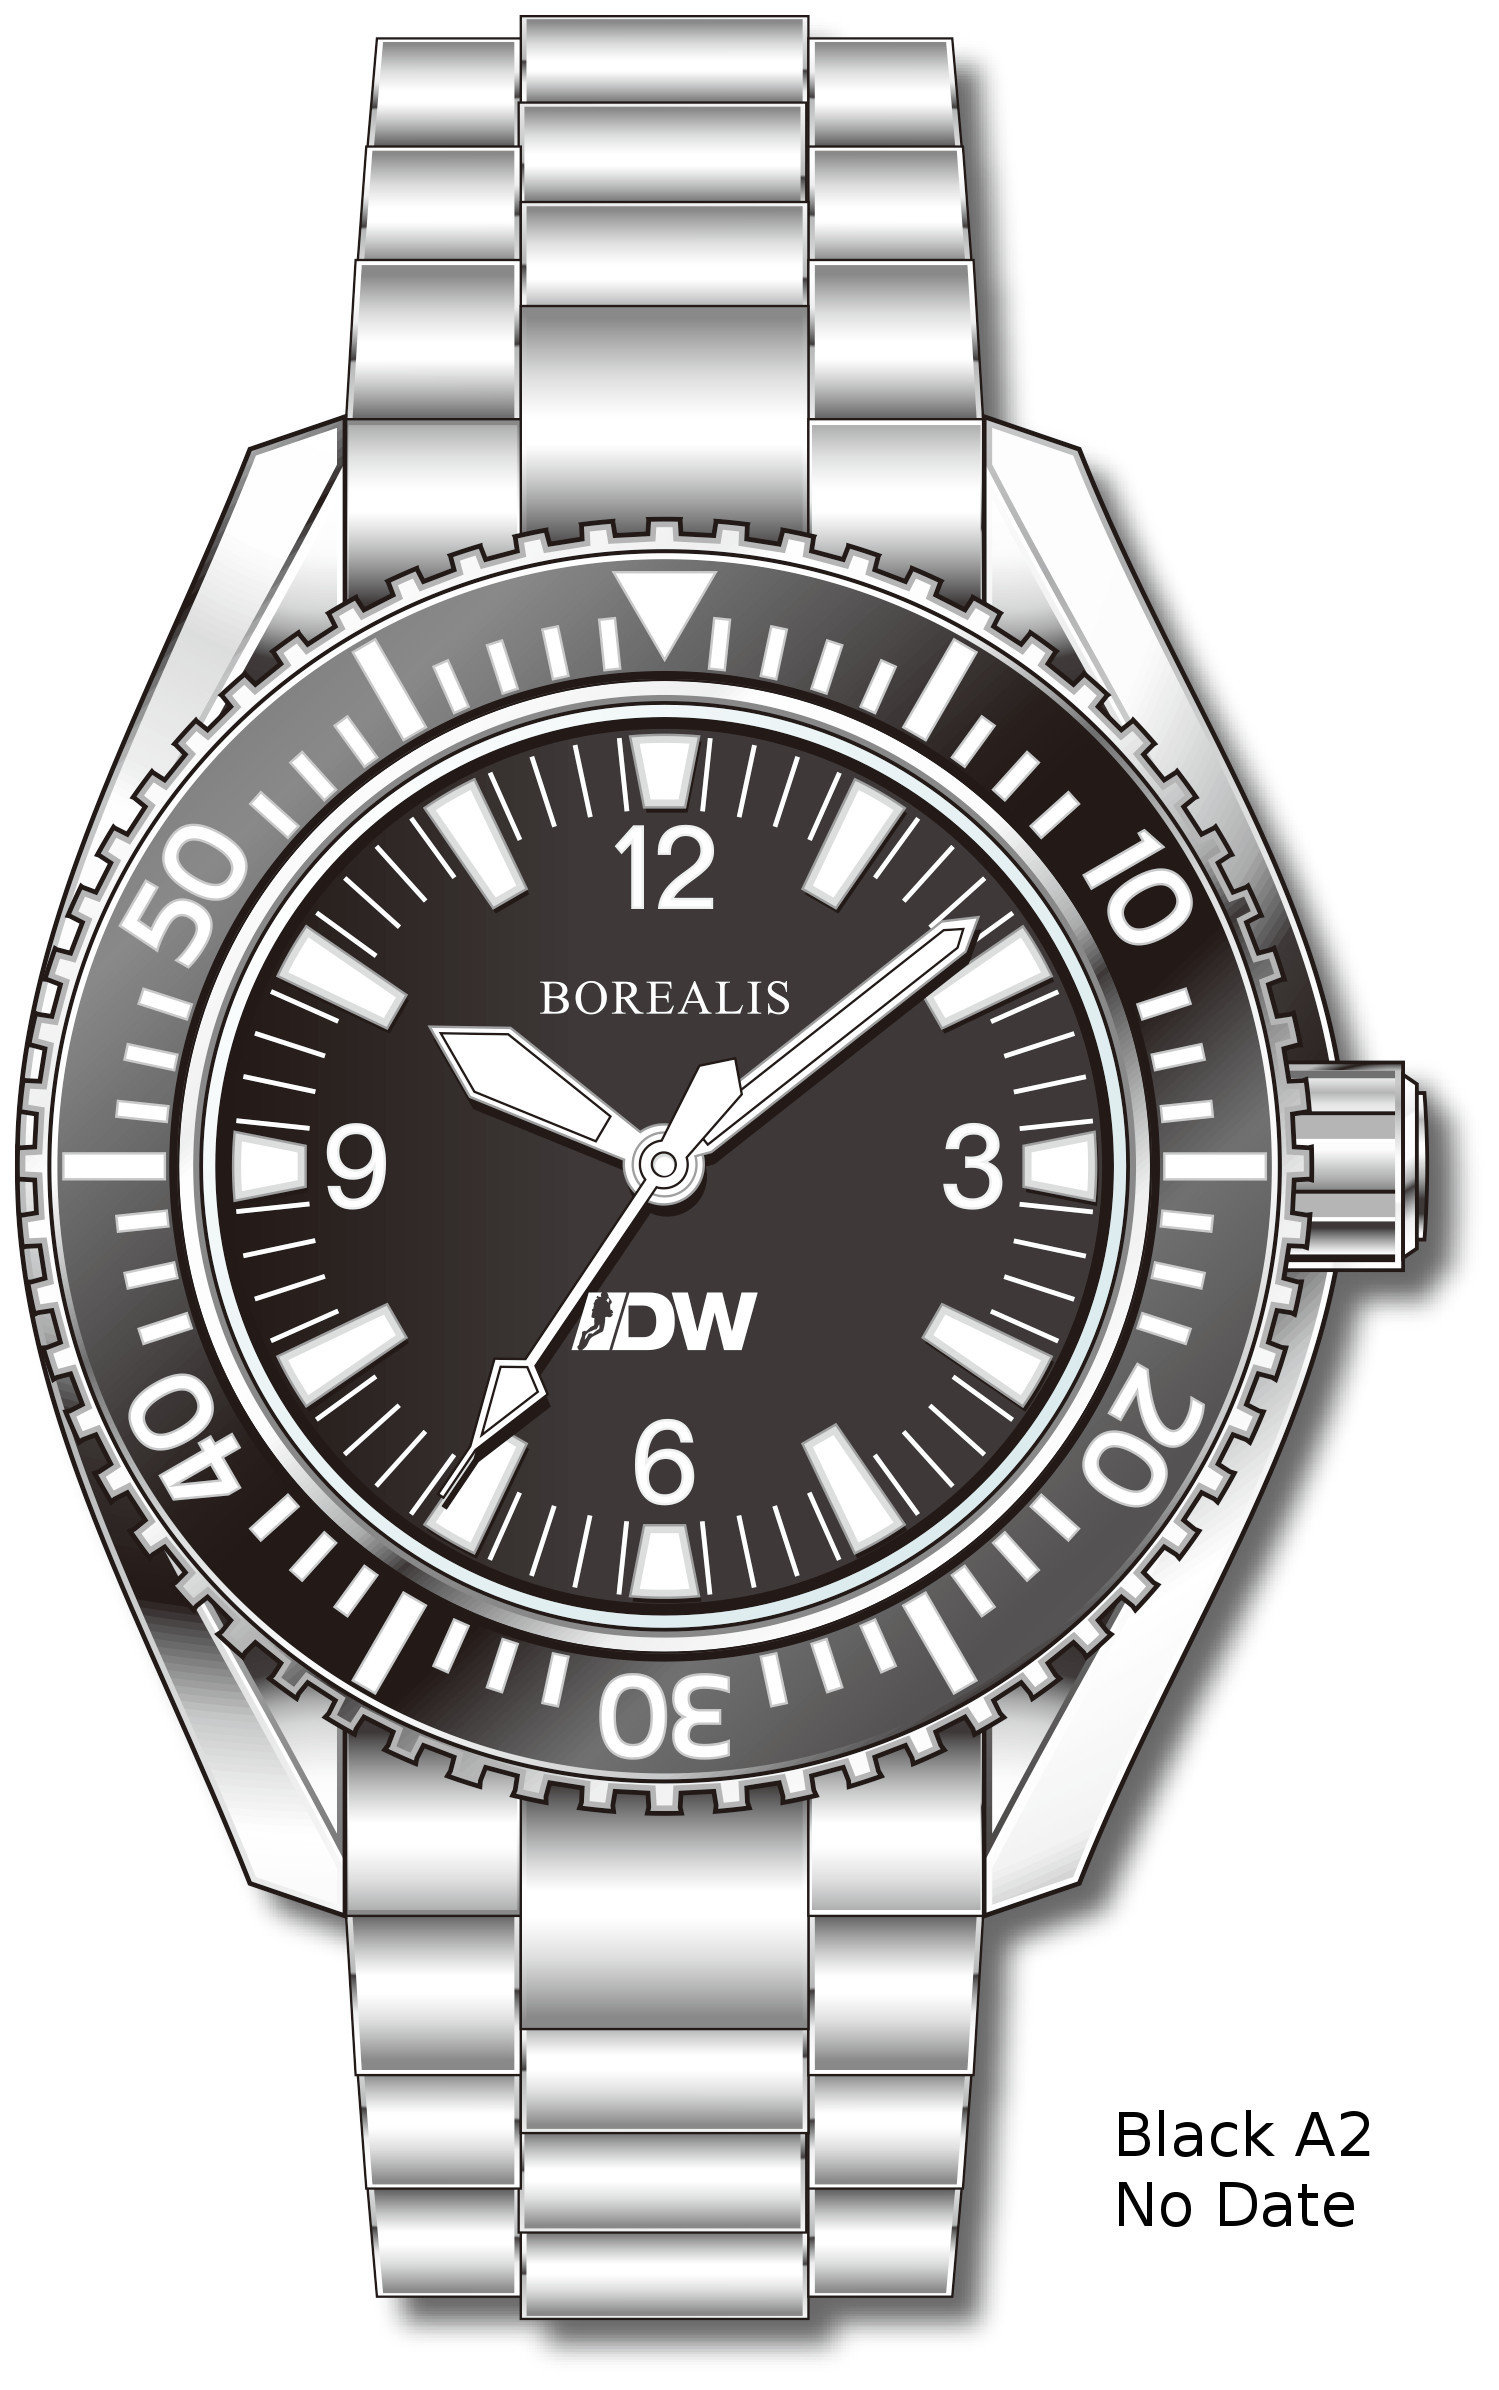 Pre-Order Borealis Estoril 300 for Diver's Watches Facebook Group Black Dial Arabic Numbers Date Black A2 No Date EDWFBGBLACKA2NDT